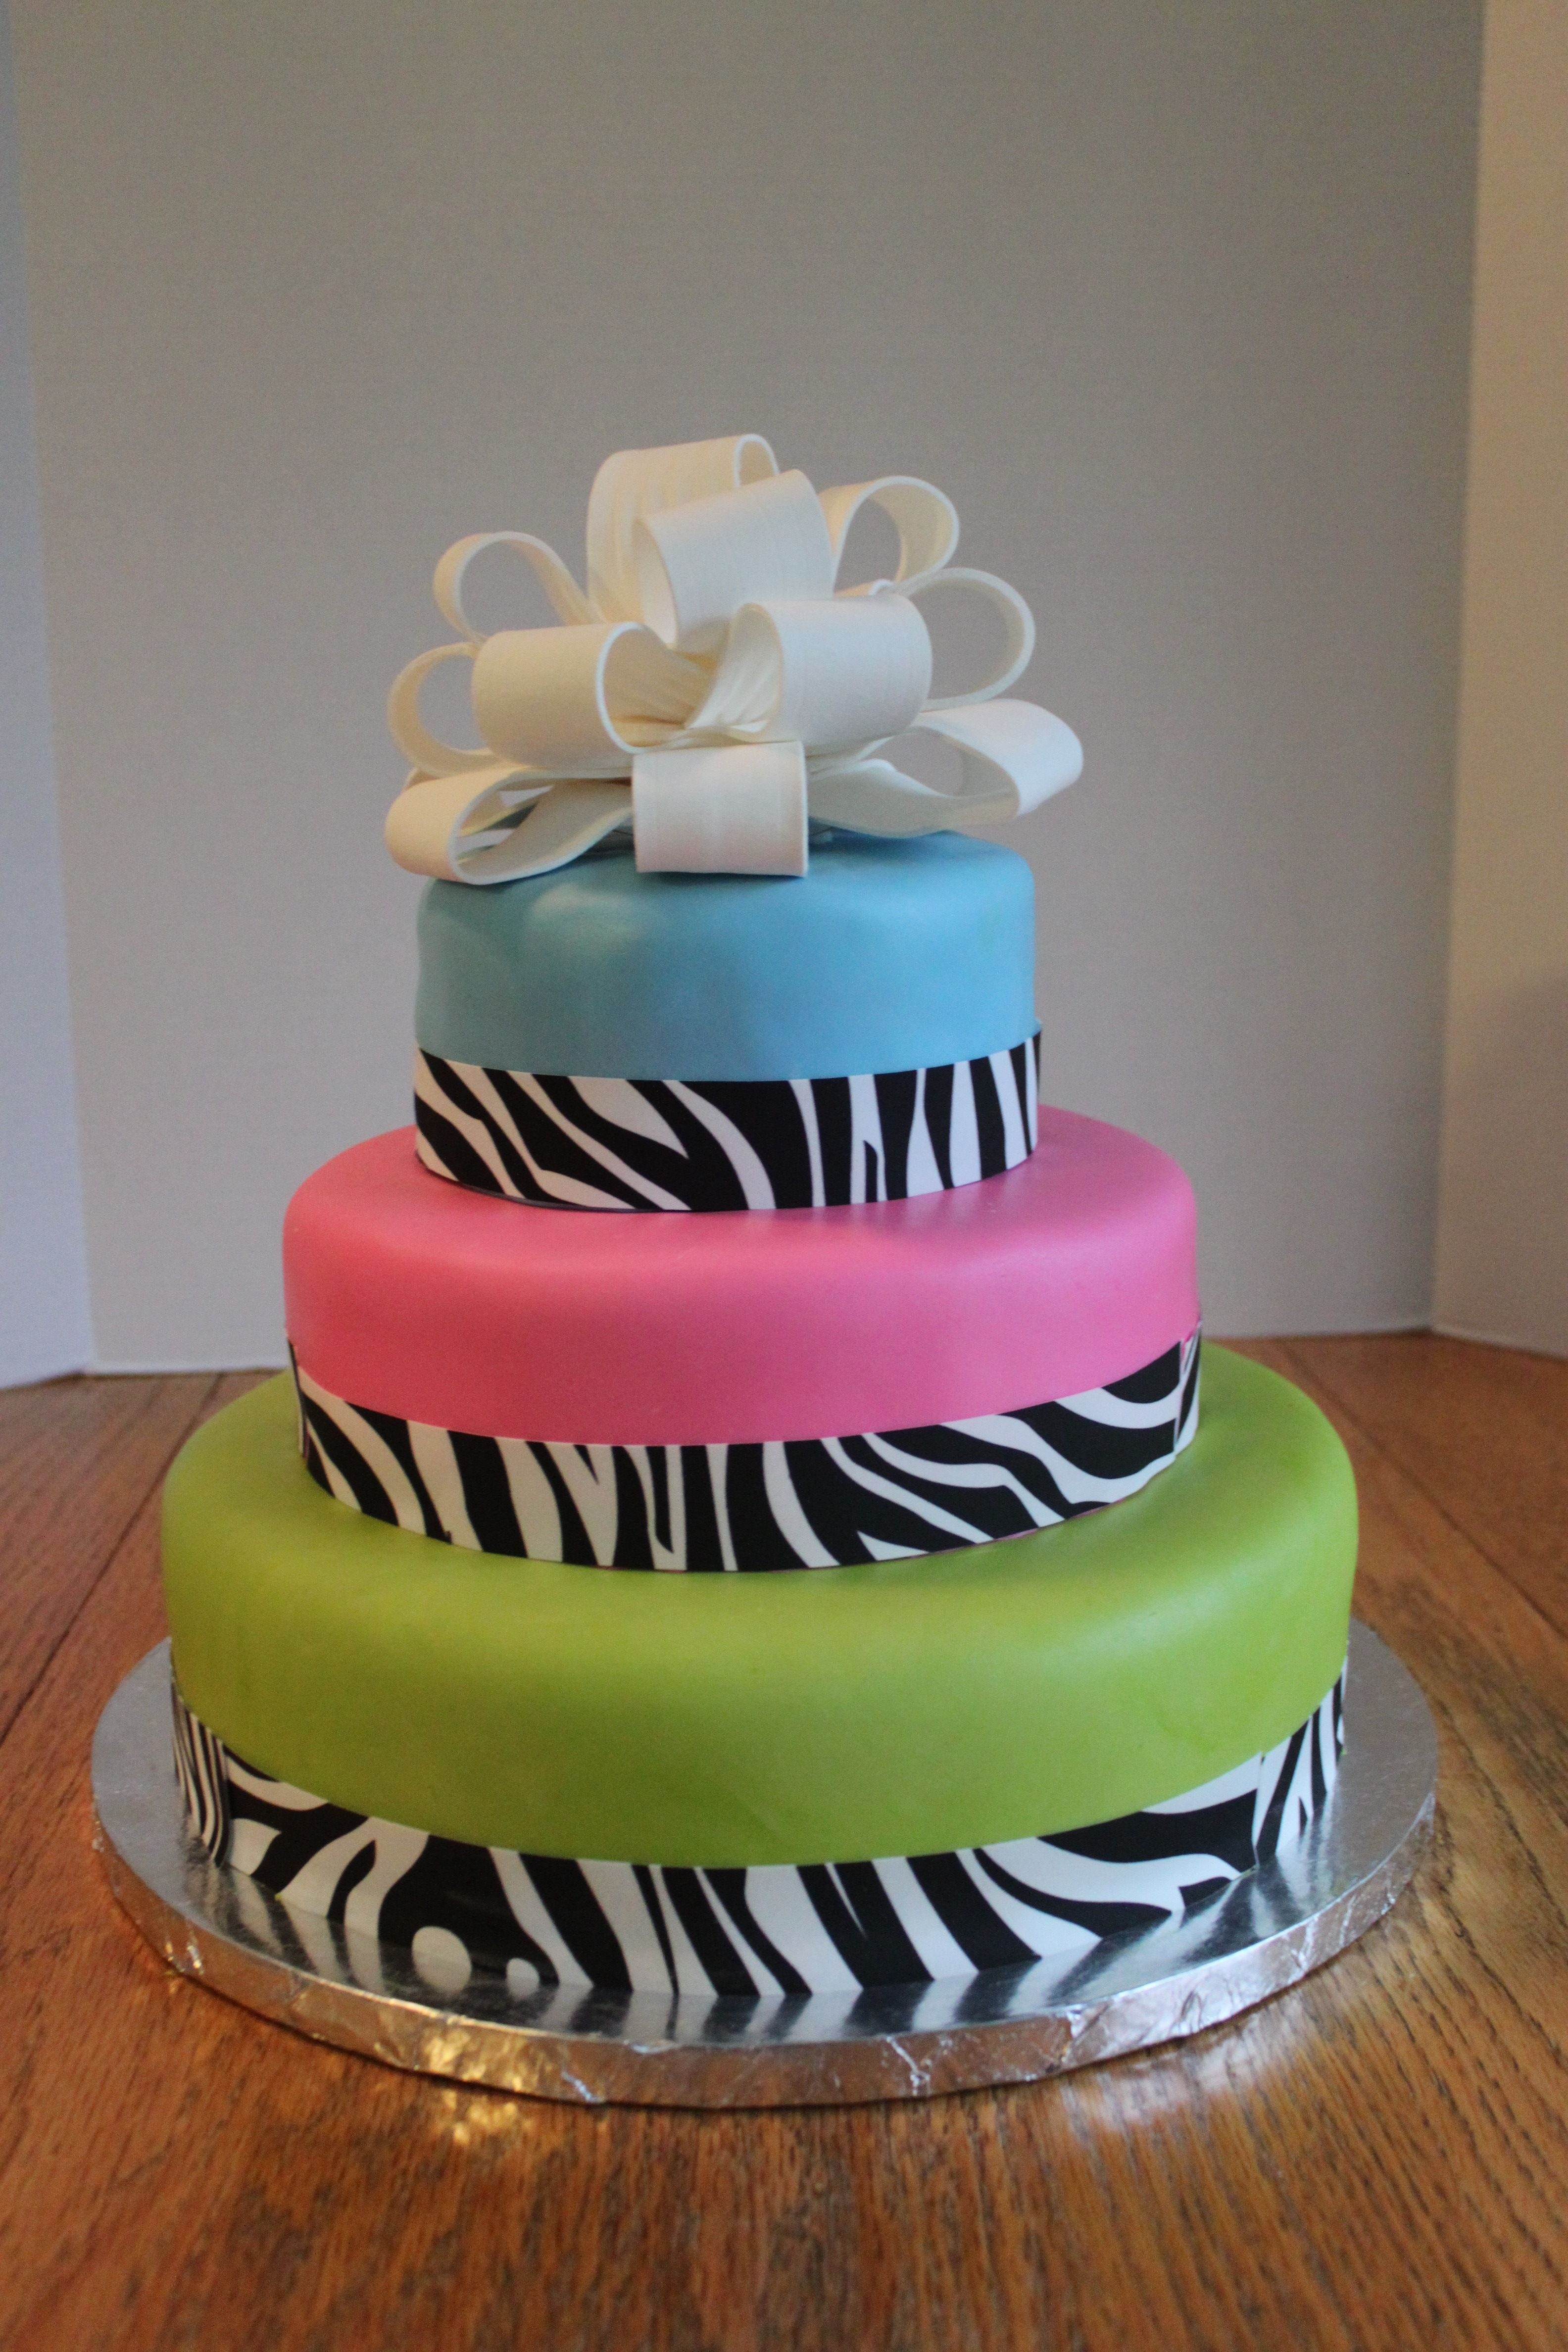 Birthday Cake Ideas Cool : I like this cool birthday cake Cool birthday cakes ...